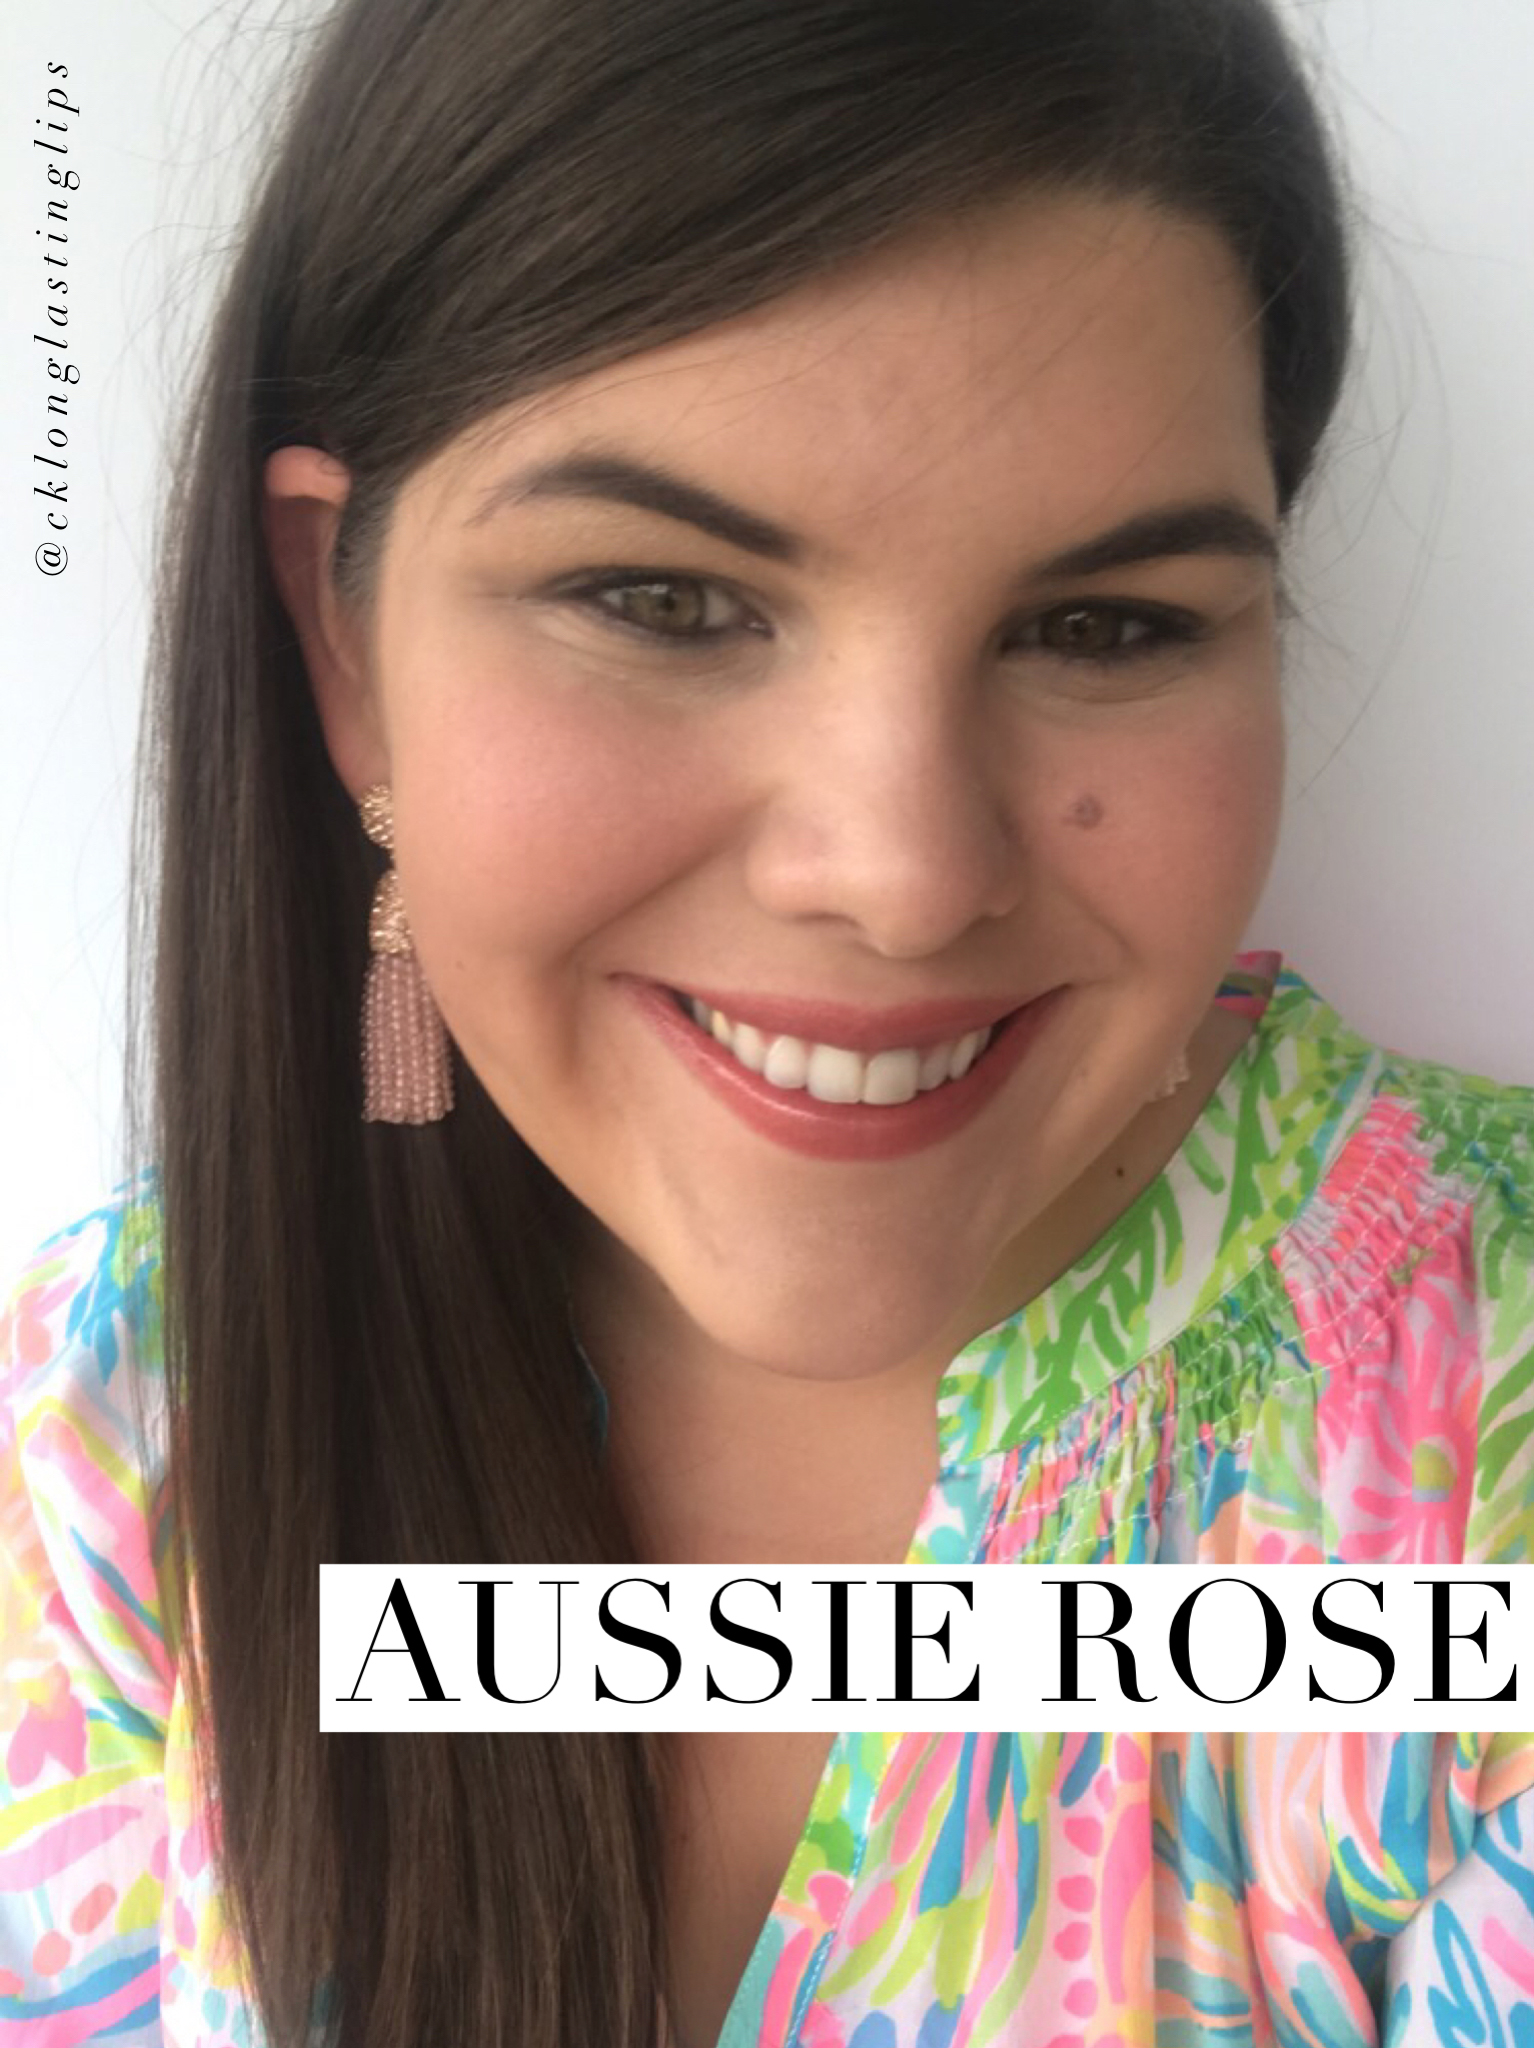 Aussie Rose LipSense - I love this long lasting lipstick. Water-proof, smudge proof & kiss proof www.carleykelley.com